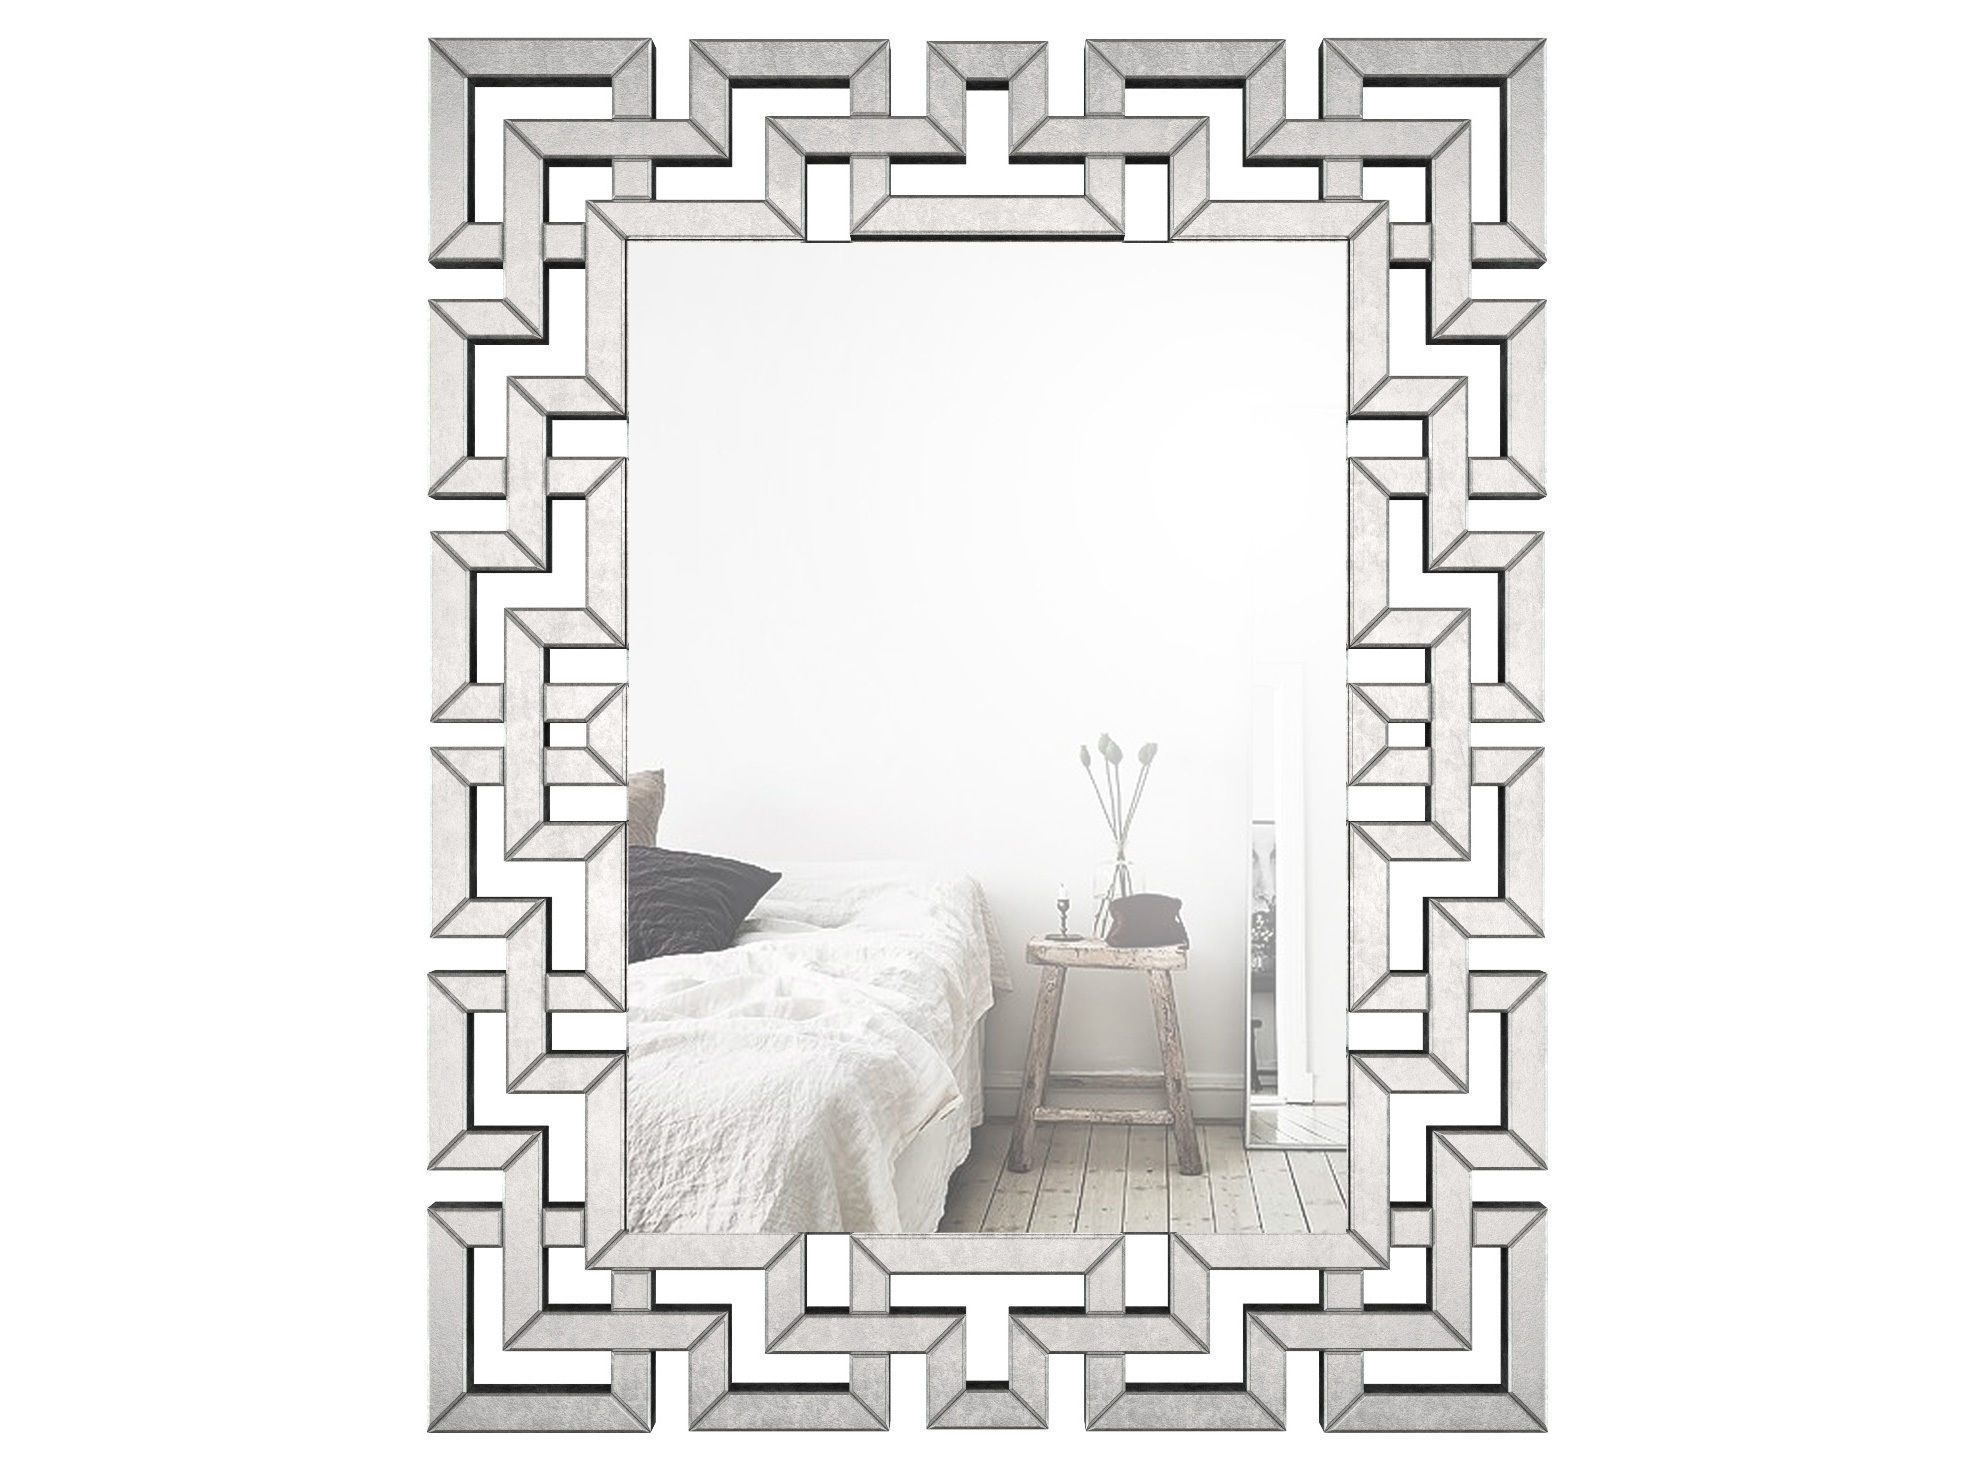 Rectangle Ornate Geometric Wall Mirror Wlao1370 | 3D Model pertaining to Rectangle Ornate Geometric Wall Mirrors (Image 22 of 30)